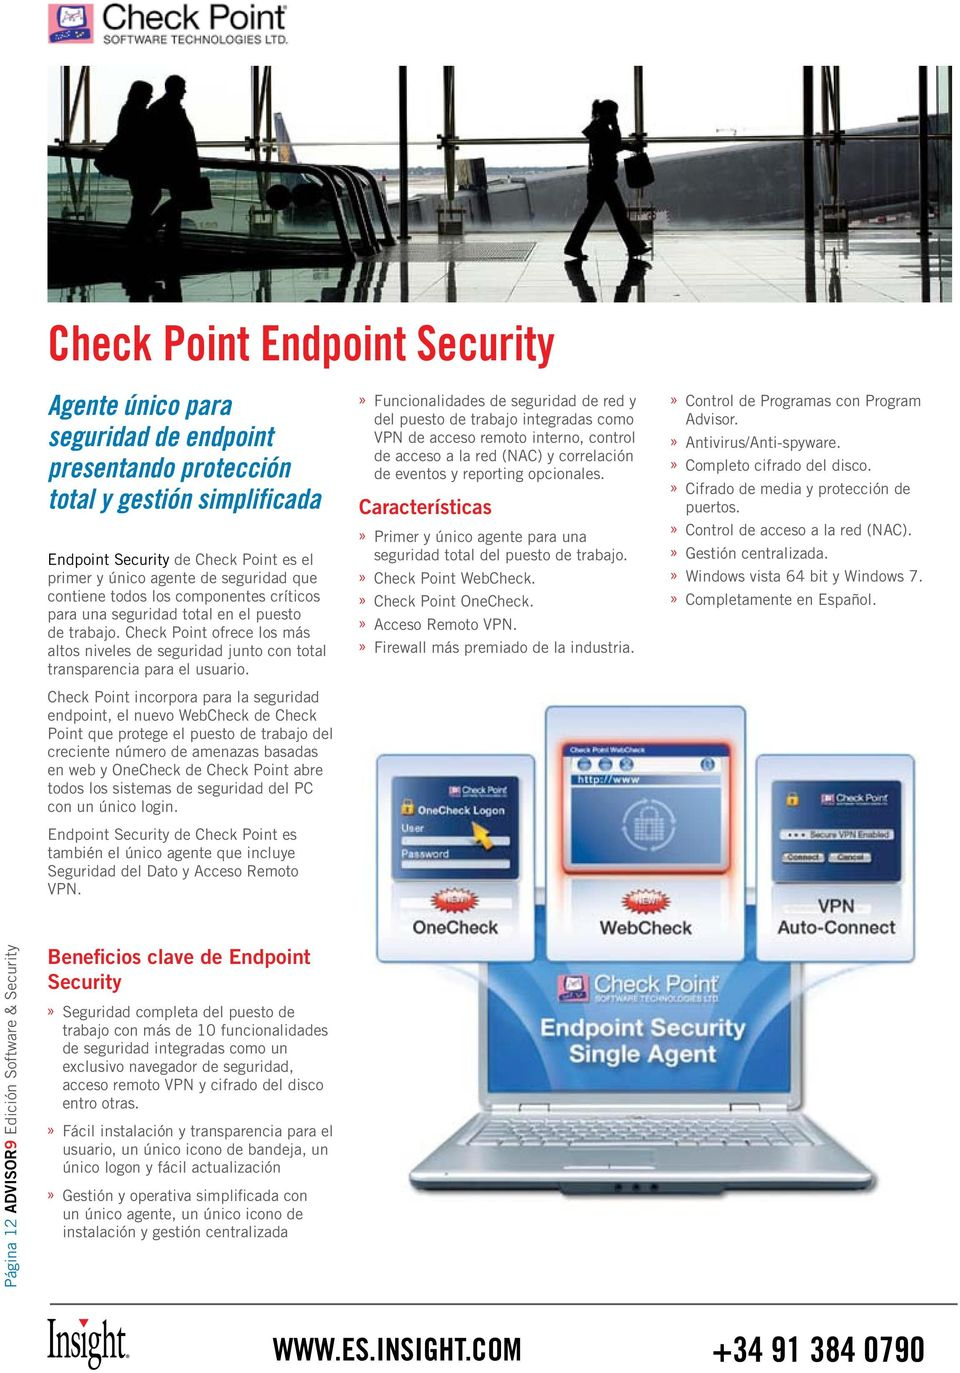 Check Point incorpora para la seguridad endpoint, el nuevo WebCheck de Check Point que protege el puesto de trabajo del creciente número de amenazas basadas en web y OneCheck de Check Point abre